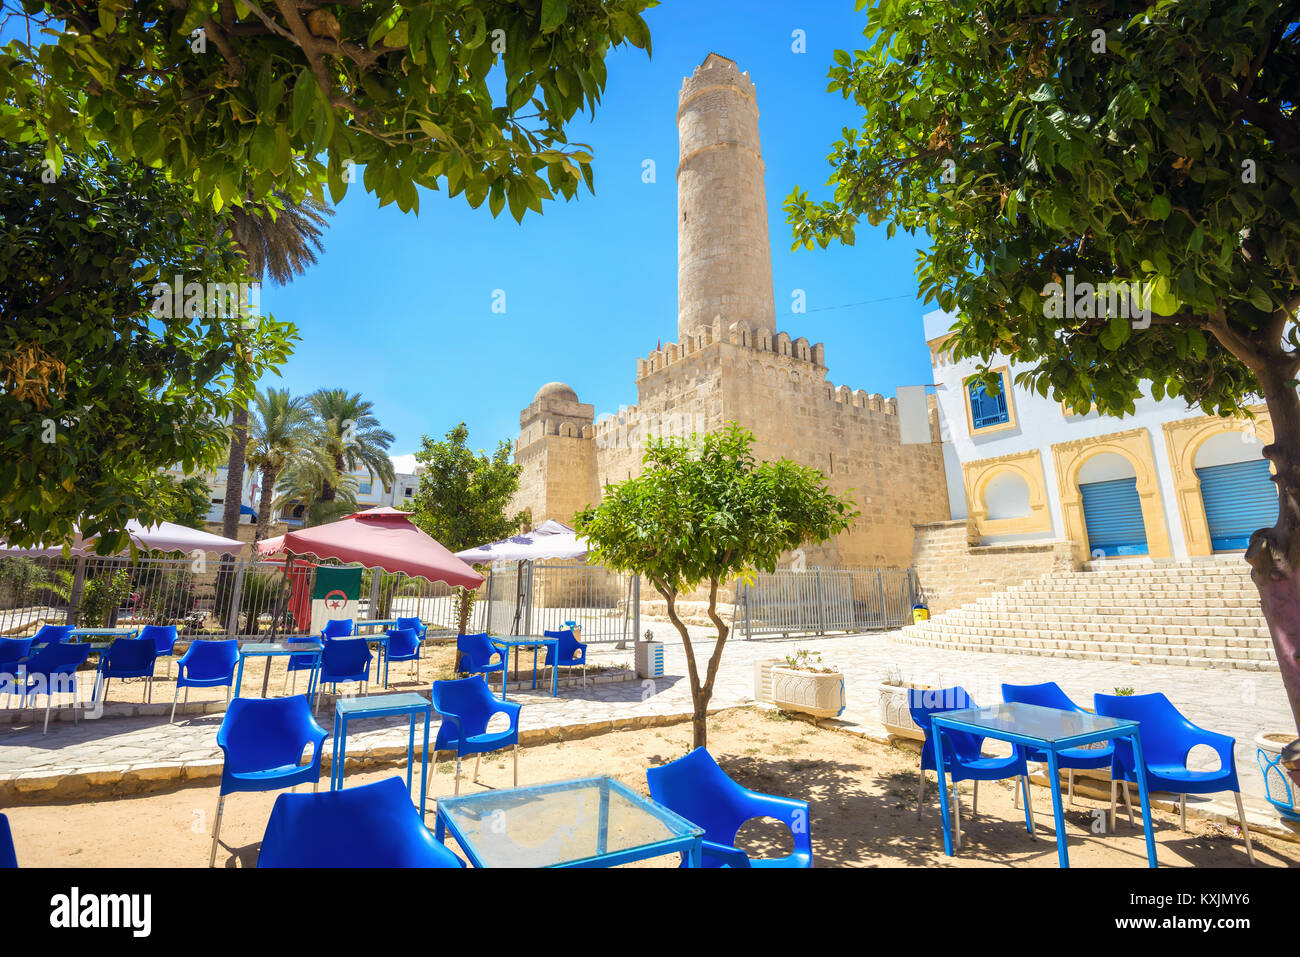 Cityscape with street cafe and view of ancient fortress in Sousse. Tunisia, North Africa - Stock Image